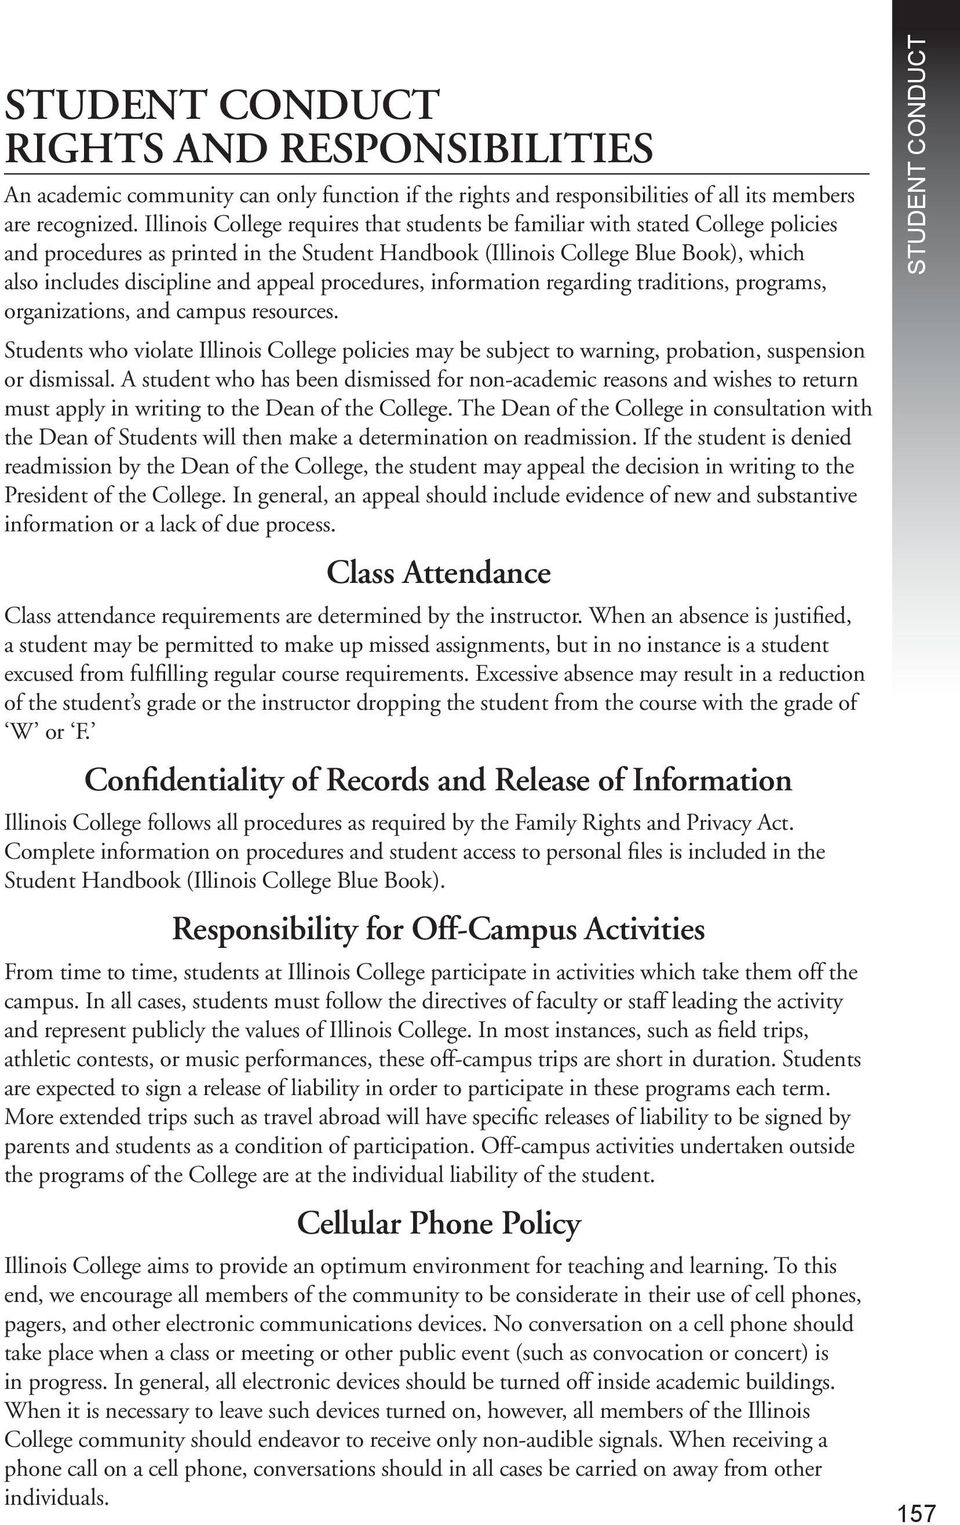 appeal procedures, information regarding traditions, programs, organizations, and campus resources.